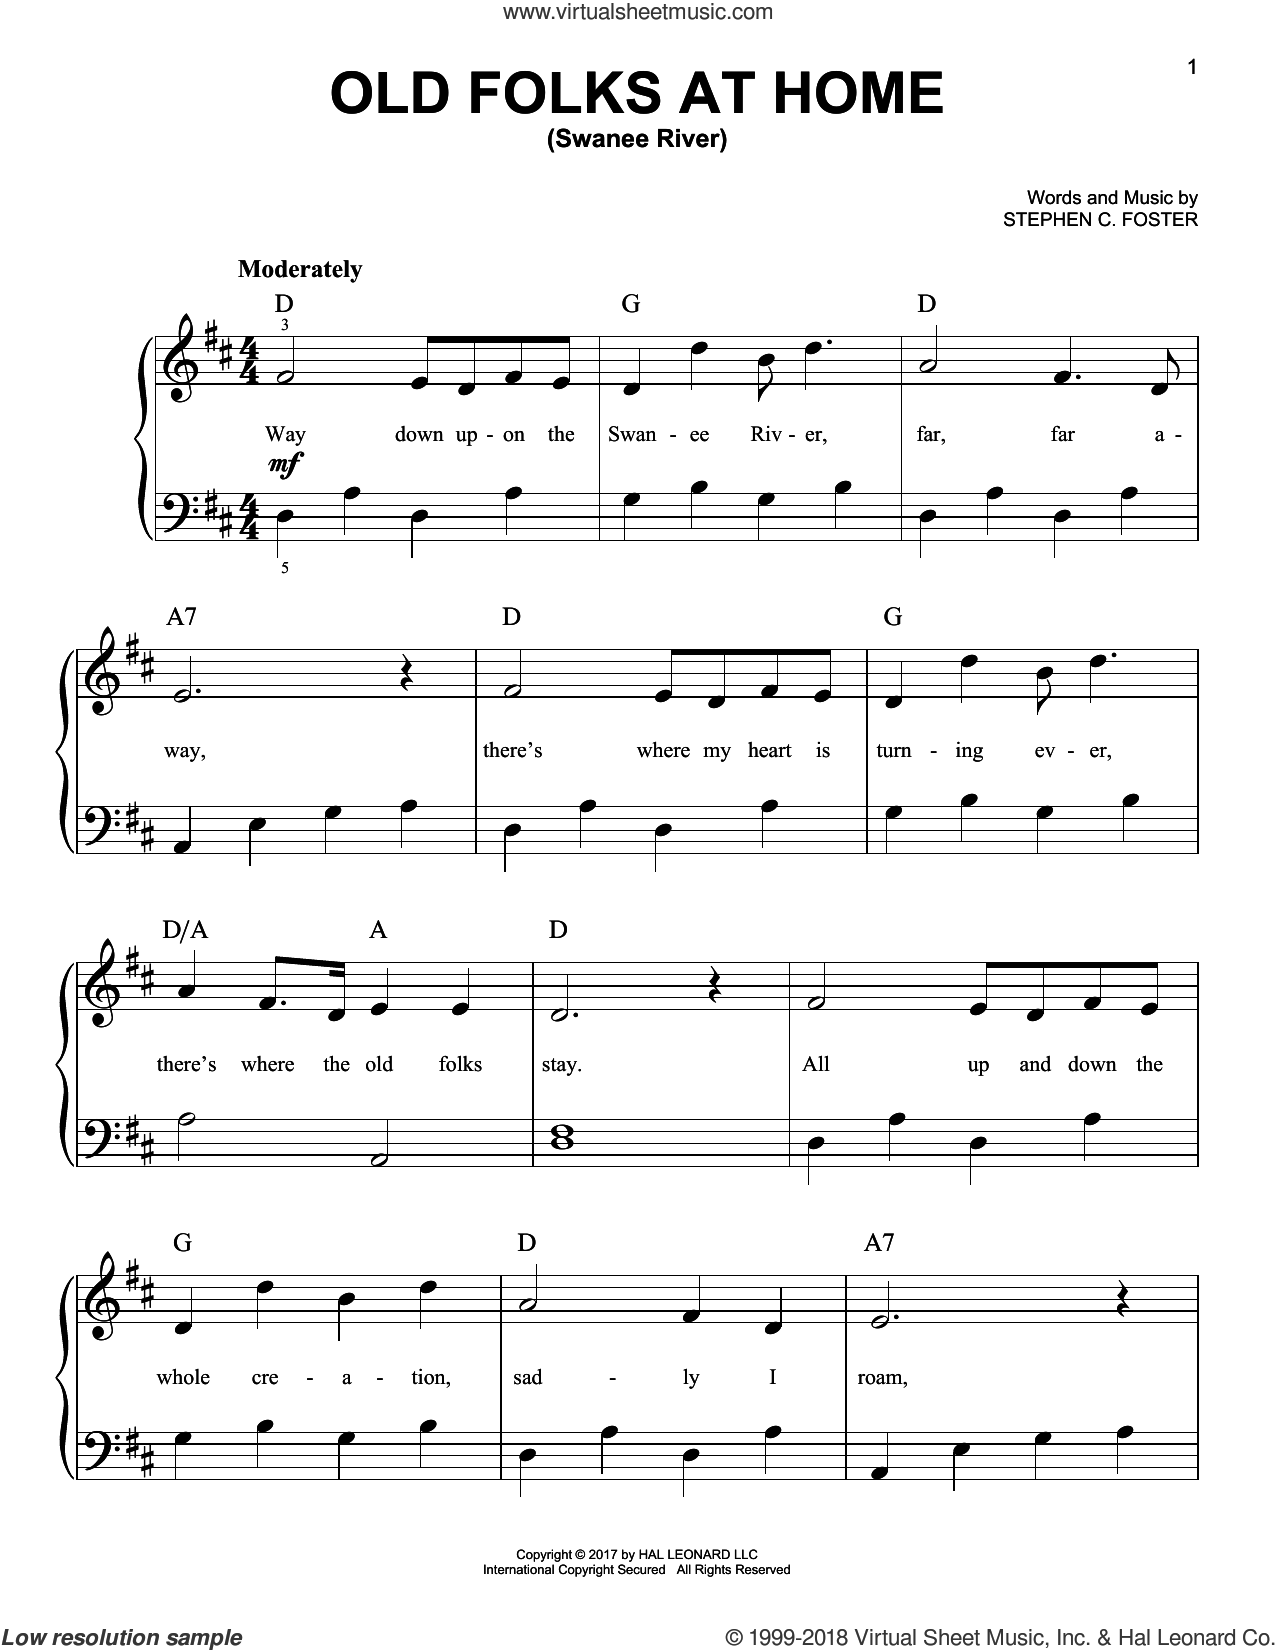 Old Folks At Home (Swanee River) sheet music for piano solo by Stephen Foster, beginner skill level